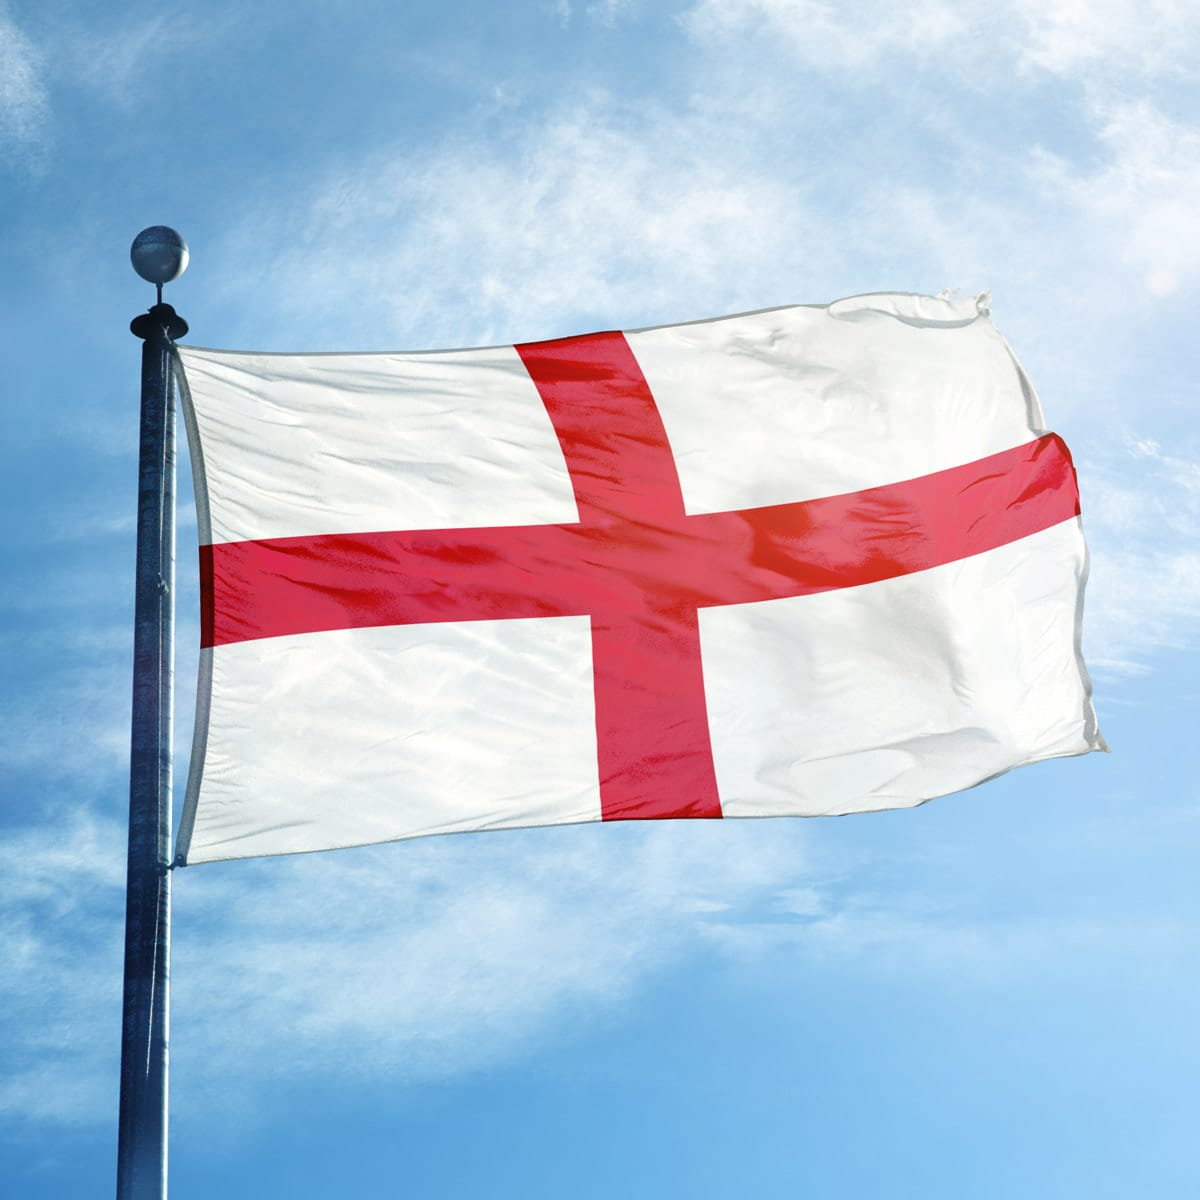 The origins and changing fortunes of St George's Day